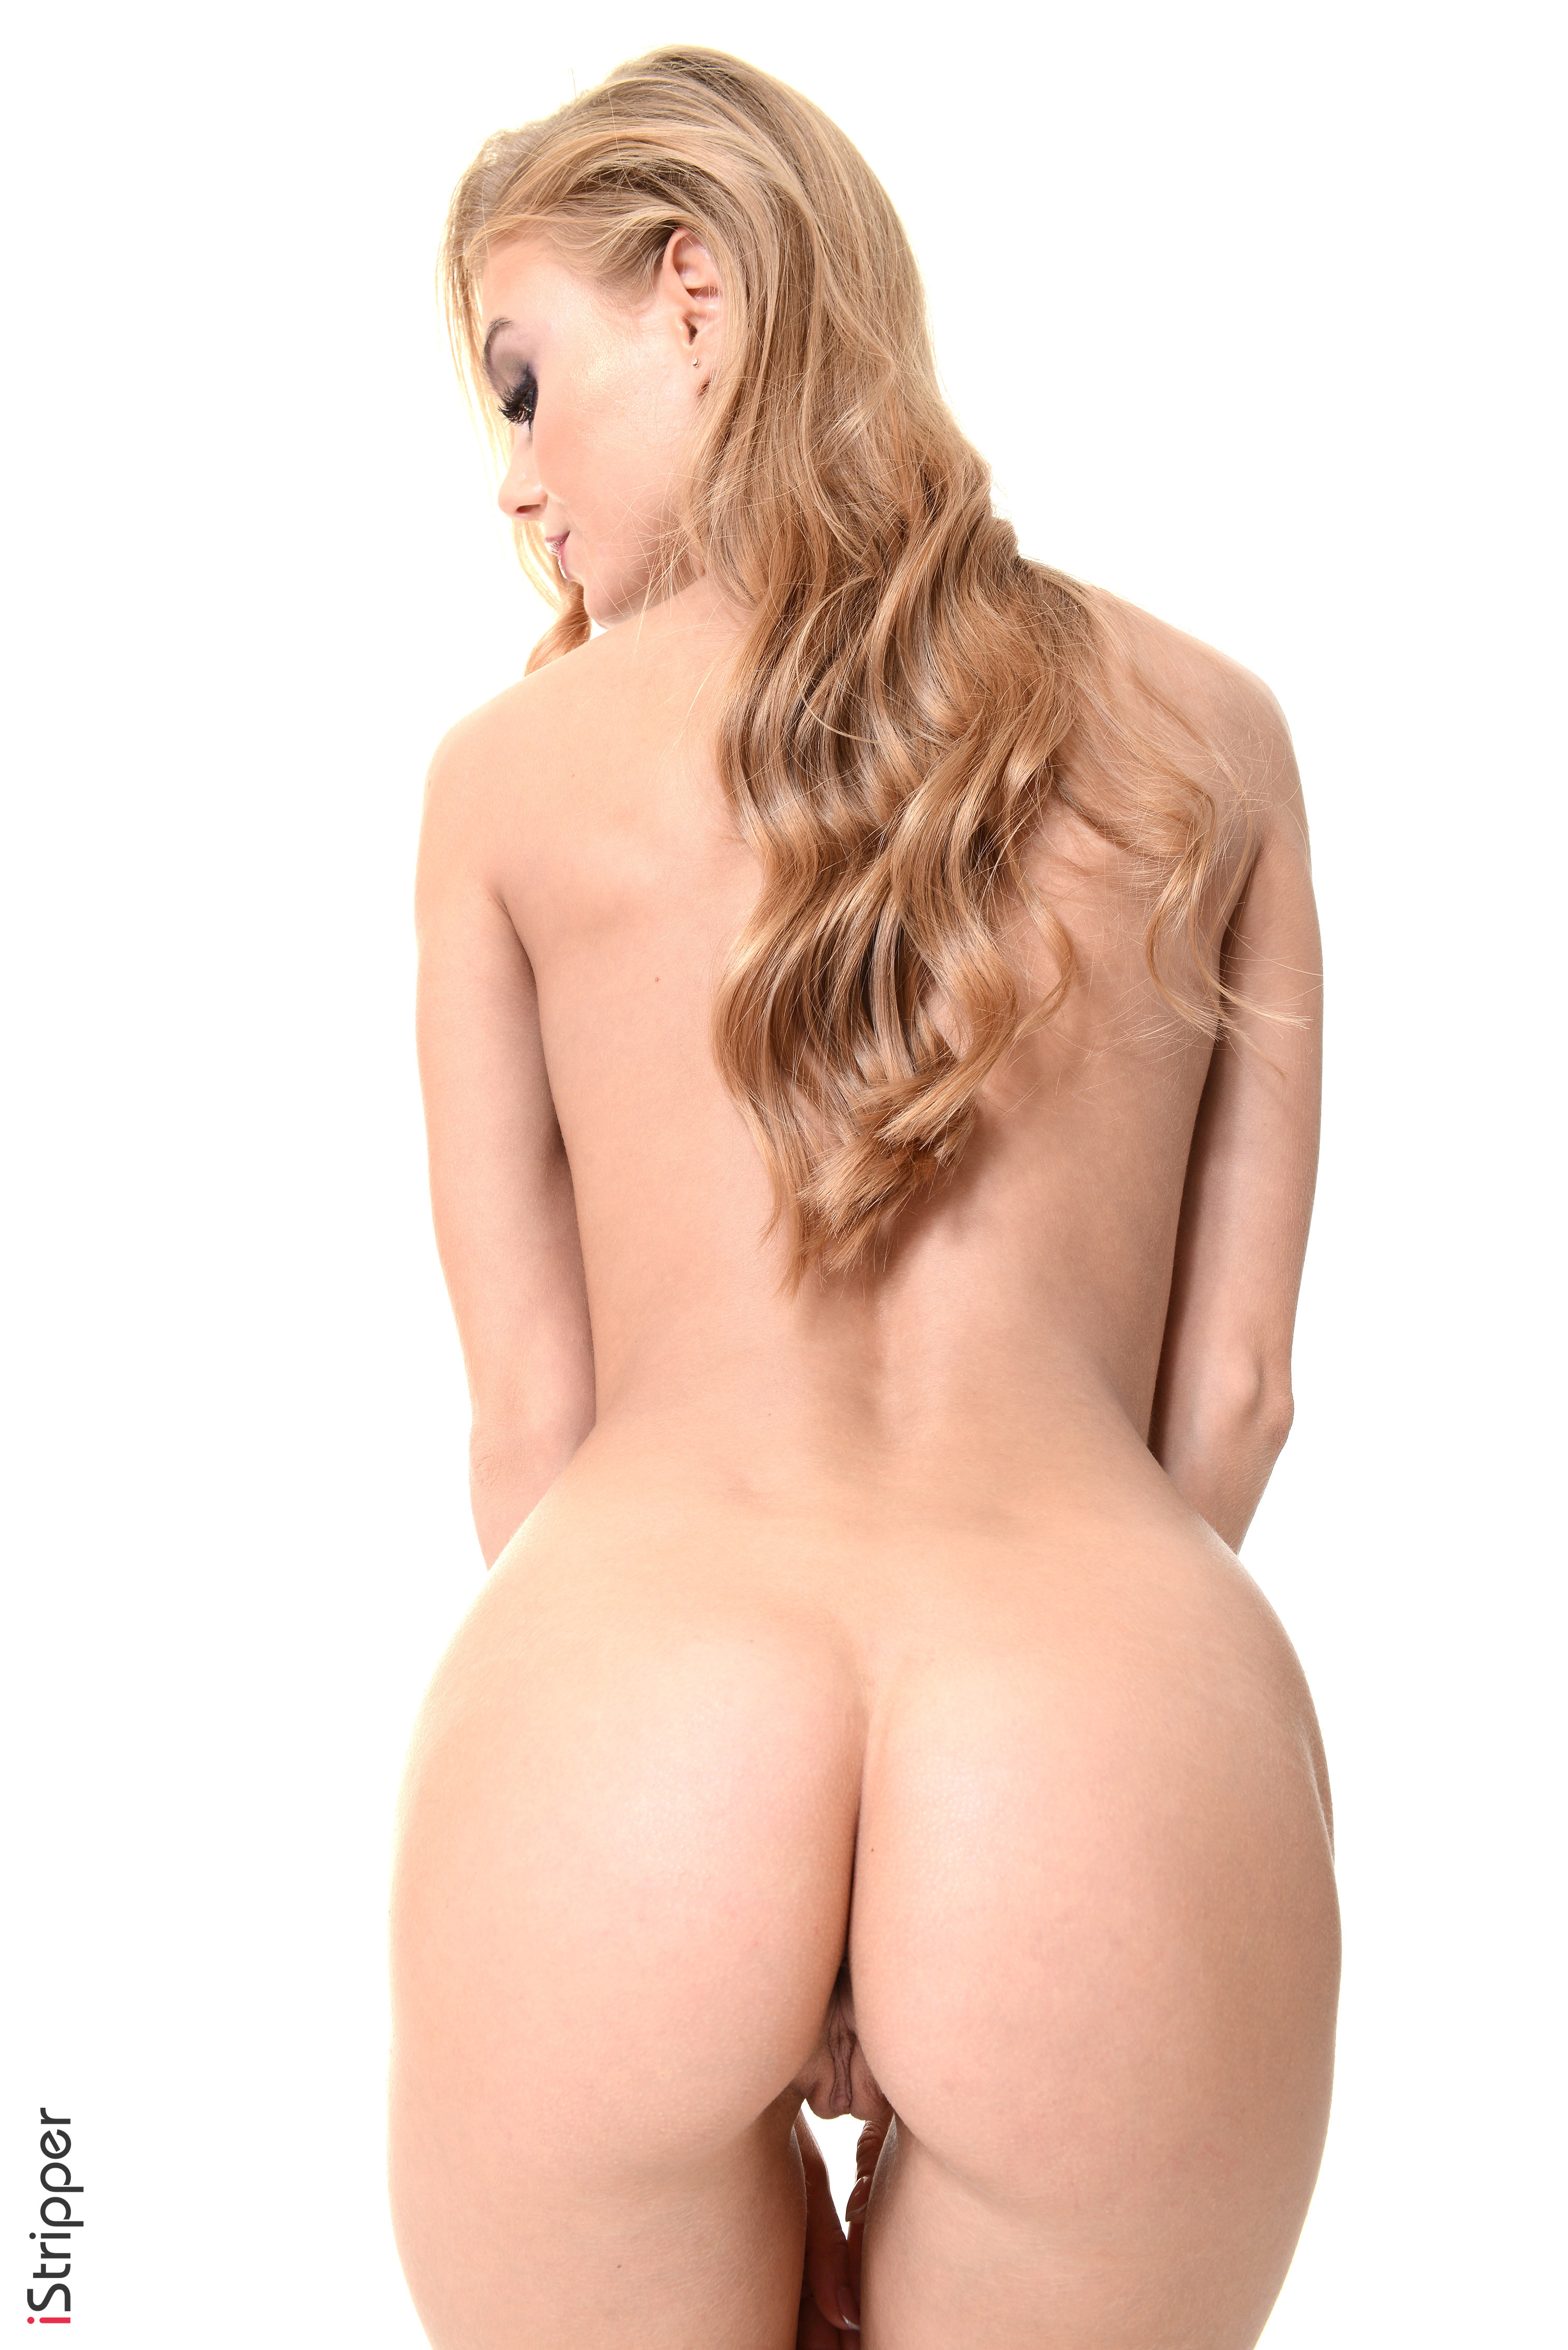 shaved vulva pictures